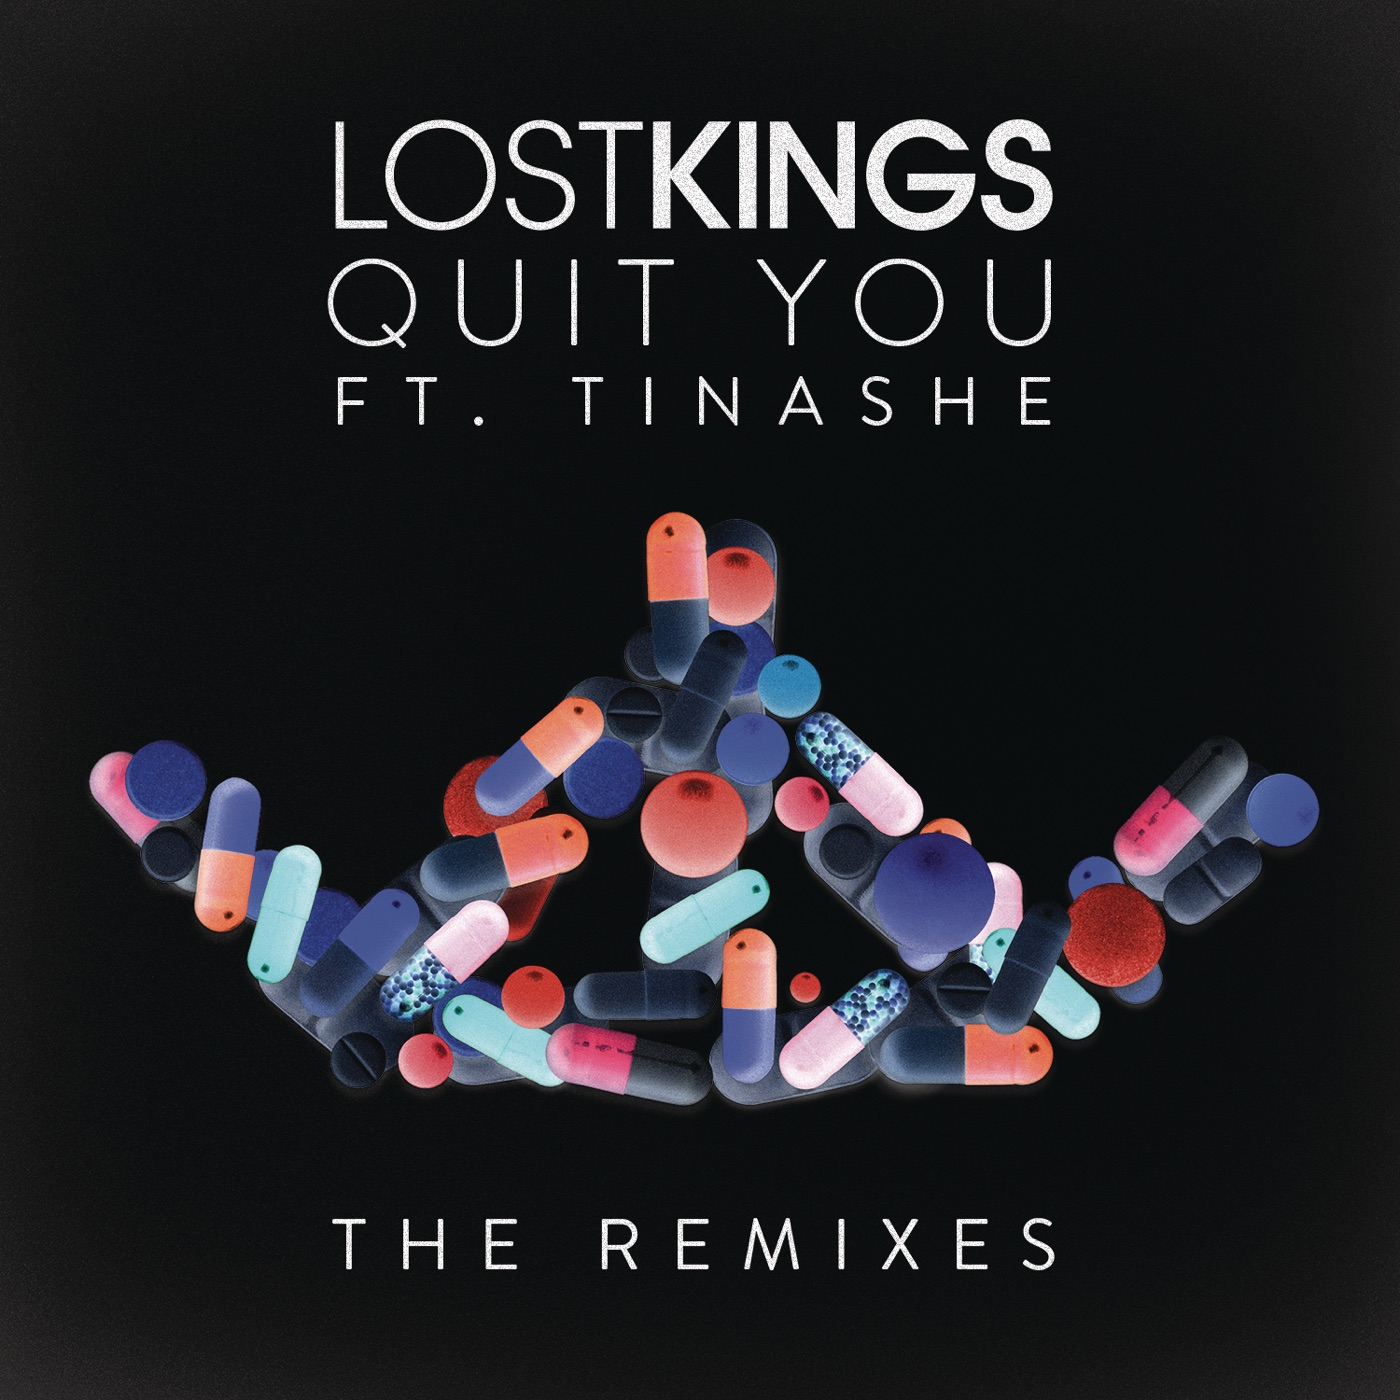 Lost Kings - Quit You (feat. Tinashe) [Remixes] - Single